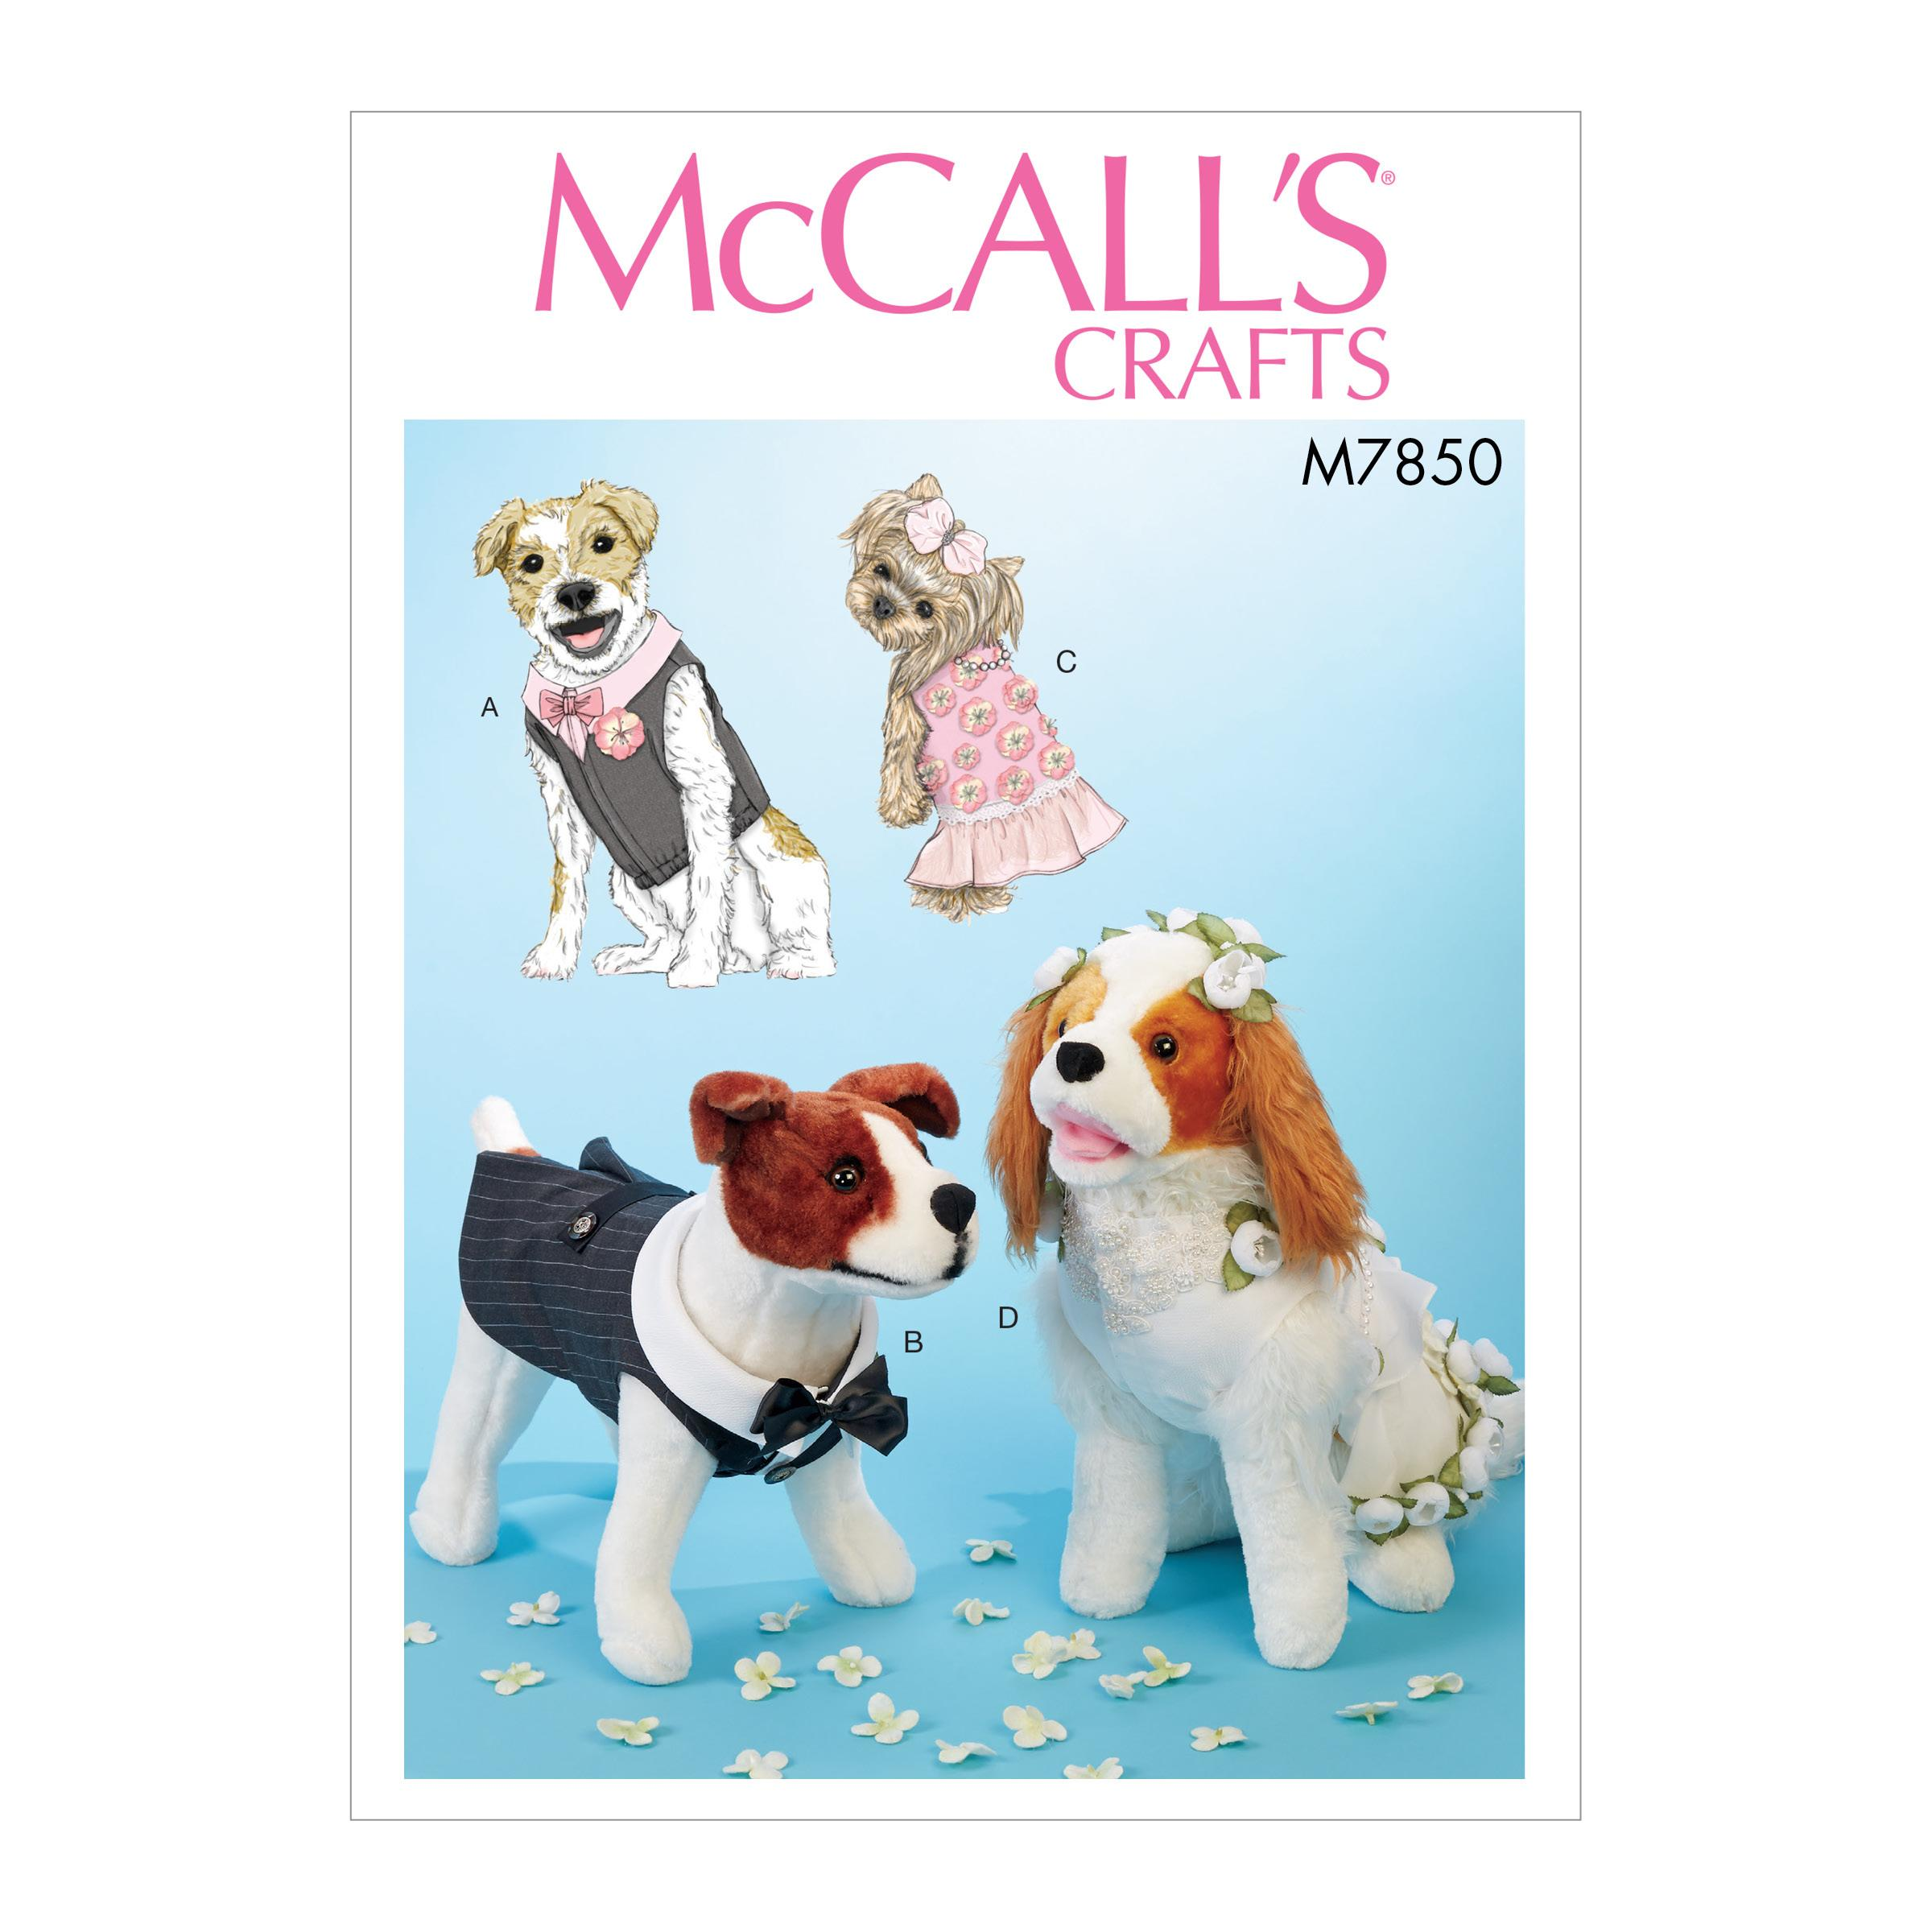 McCalls M7850 Crafts Pets